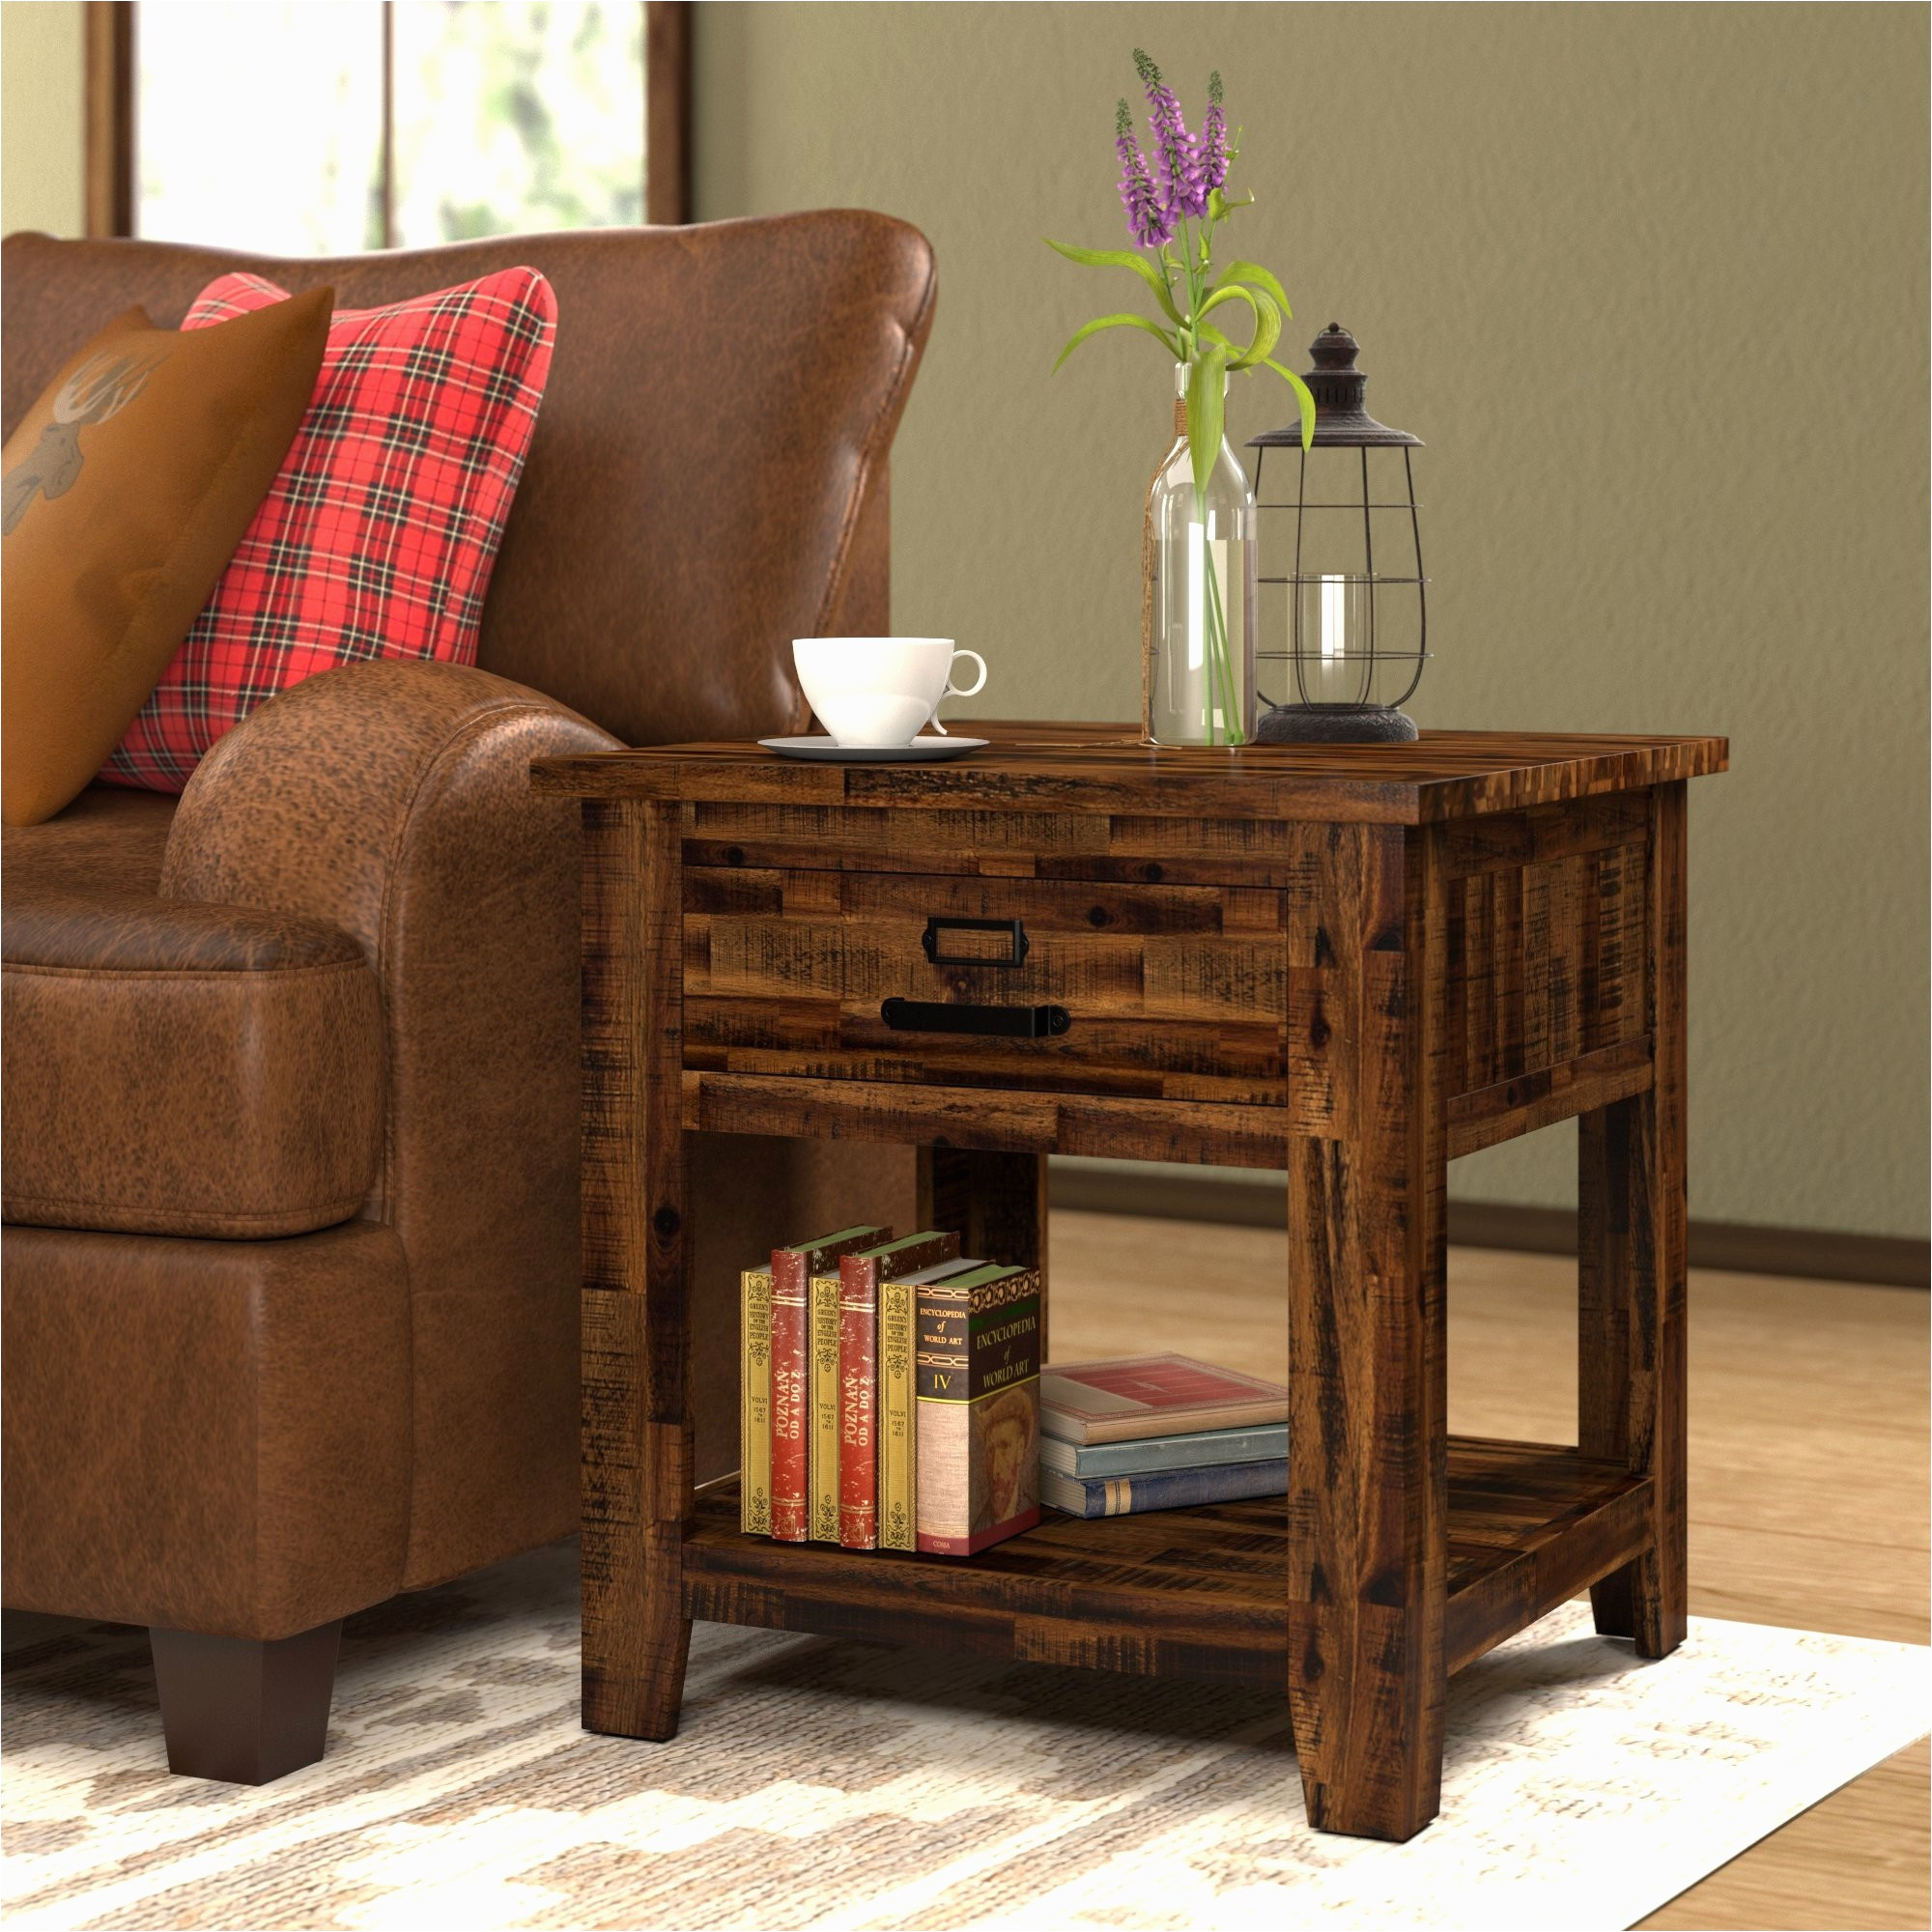 bobs furniture living room tables nice looking bobs furniture living room tables and 11 bob